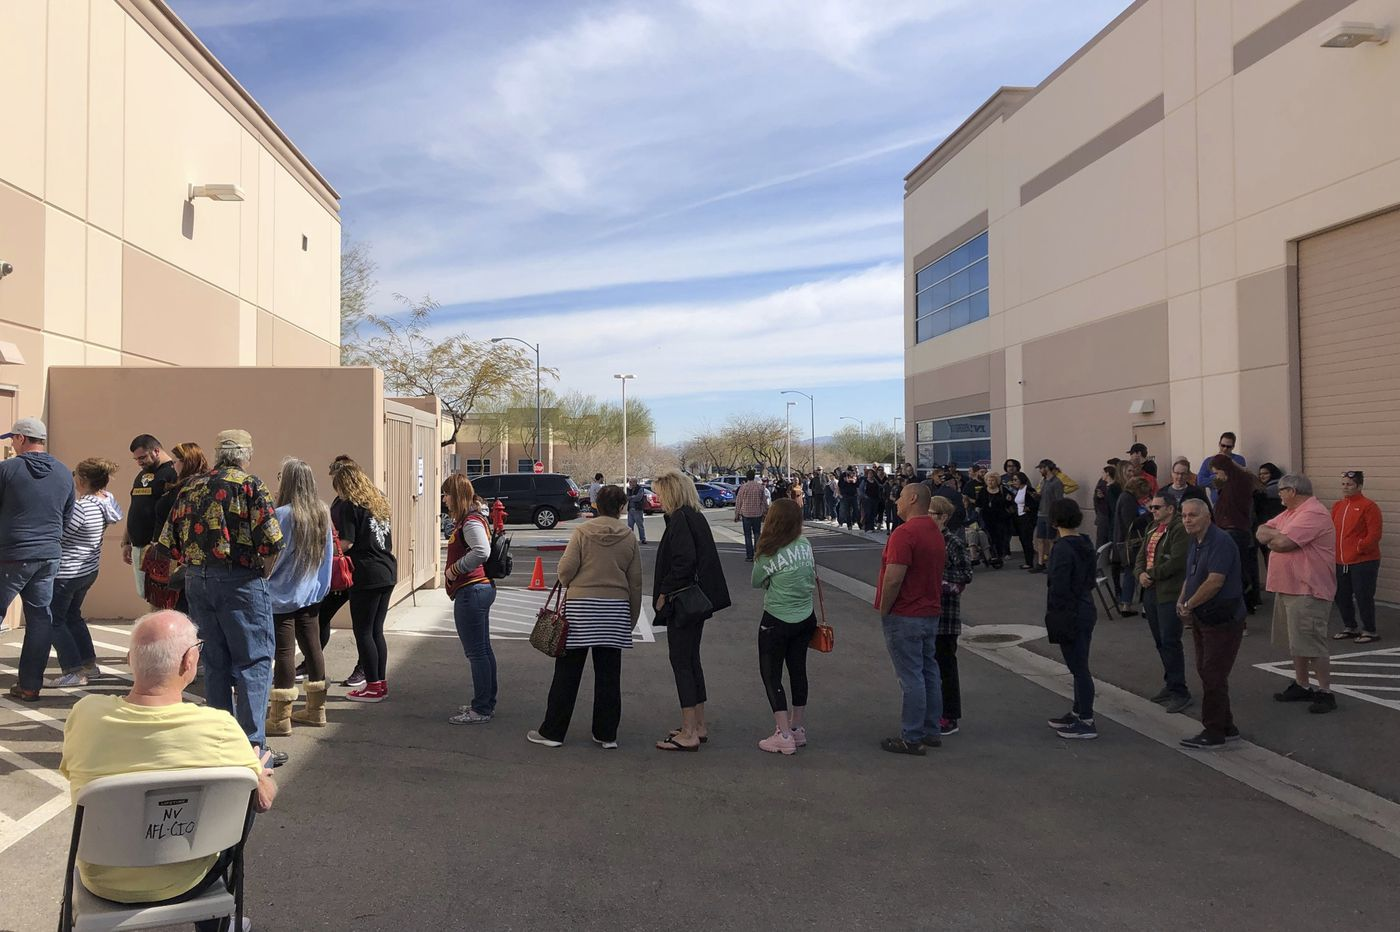 Campaigns warn of chaos ahead of Nevada caucuses